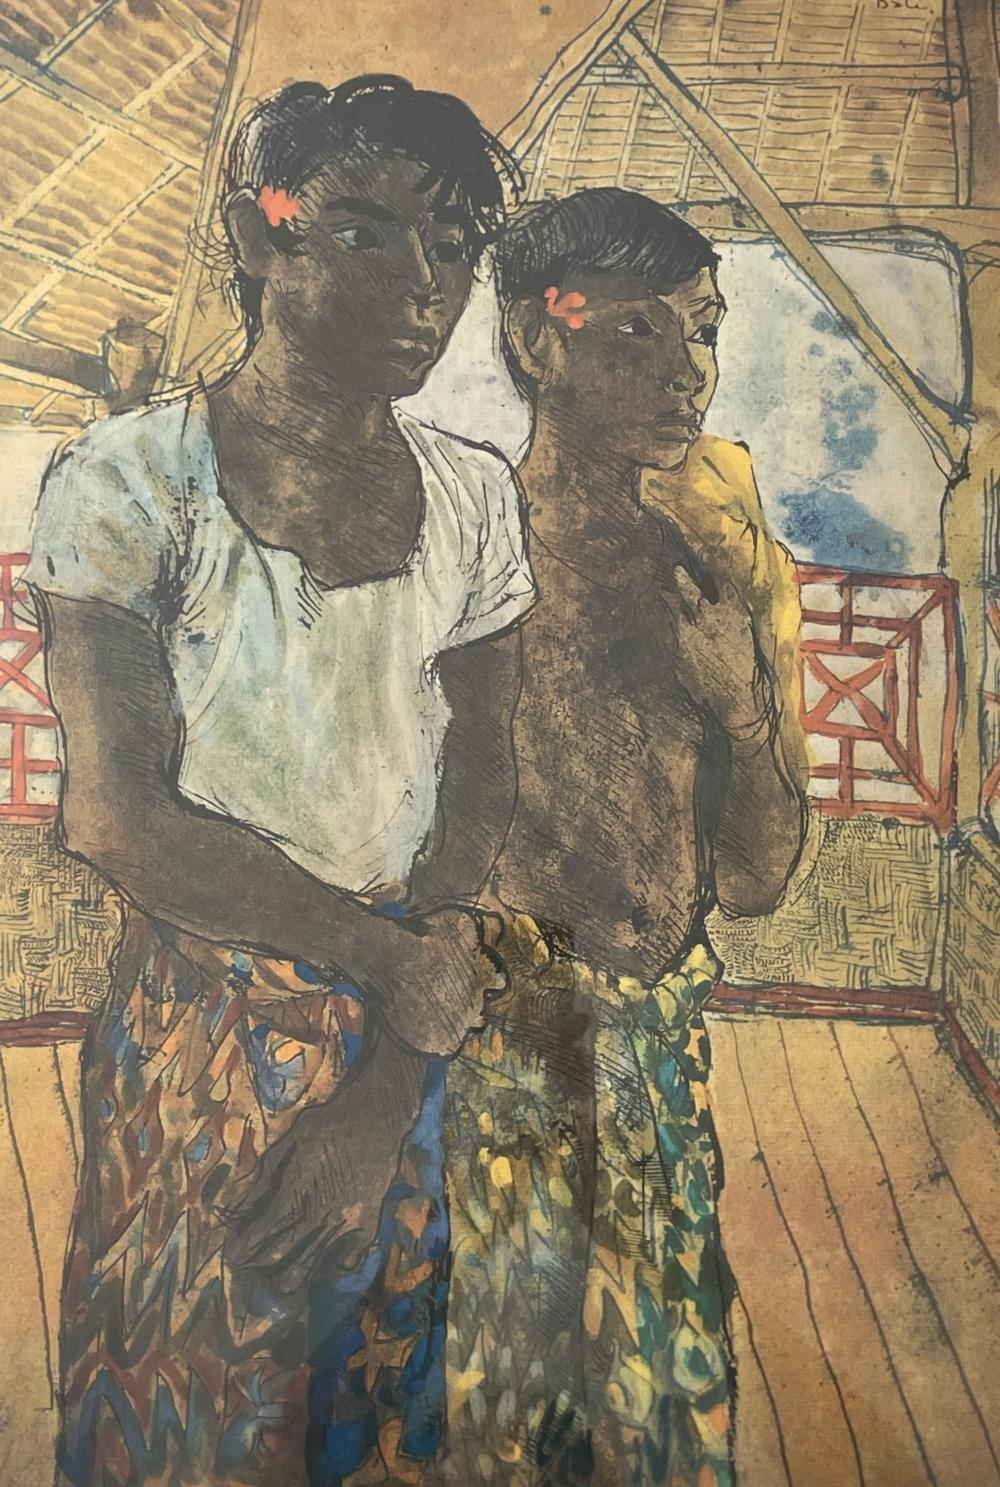 Donald Stuart Lesley Friend, Australian 1915-1989, Two young boys in sarongs, lithograph, 55.50 x 38 cm. (21.85 x 14.96 in.), Frame: 71.50 x 53.50 cm. (28.15 x 21.06 in.)